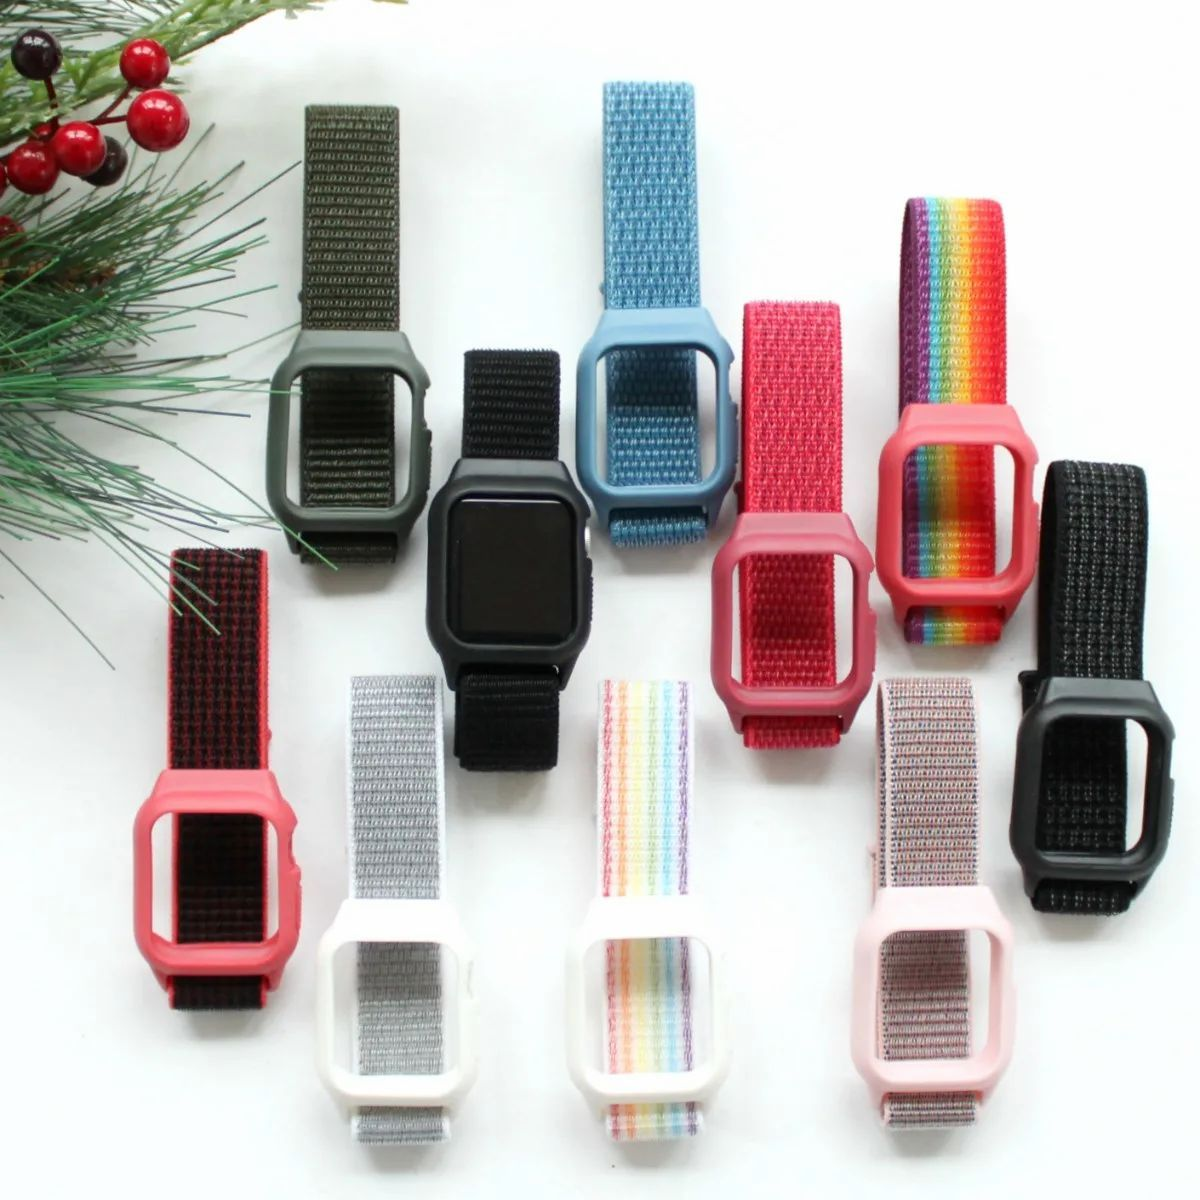 ad Cute Apple Watch Bumpers and Bands. Protect your watch